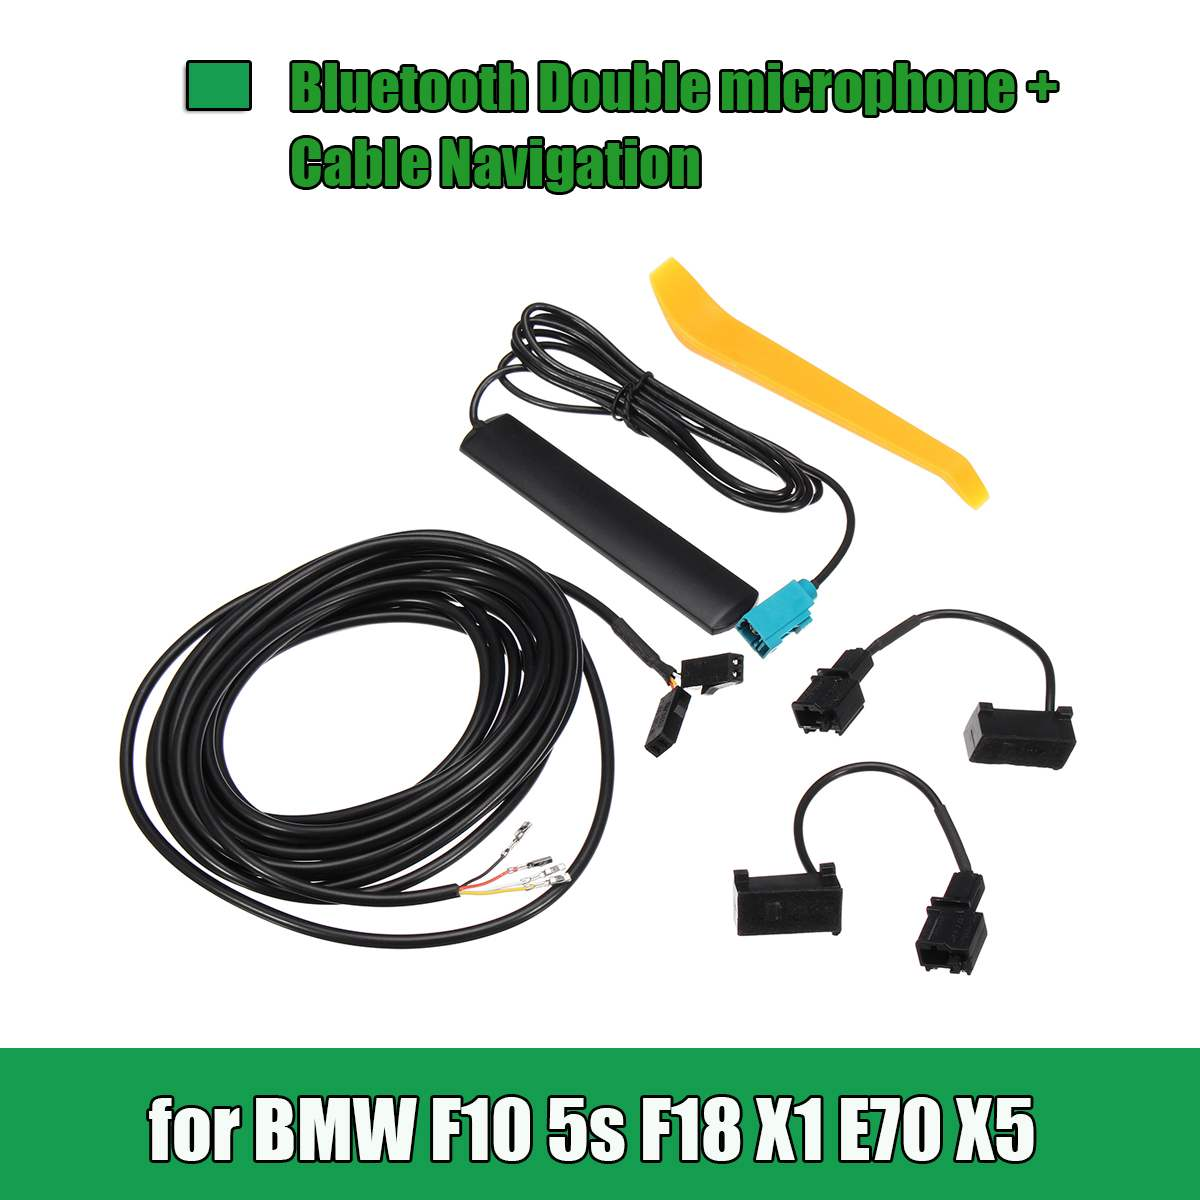 12/13/25/26 Pin <font><b>bluetooth</b></font> Double Microphone Car GPS Navigation Cable DIY Set For <font><b>BMW</b></font> F10 5S F18 X1 <font><b>E70</b></font> <font><b>X5</b></font> image